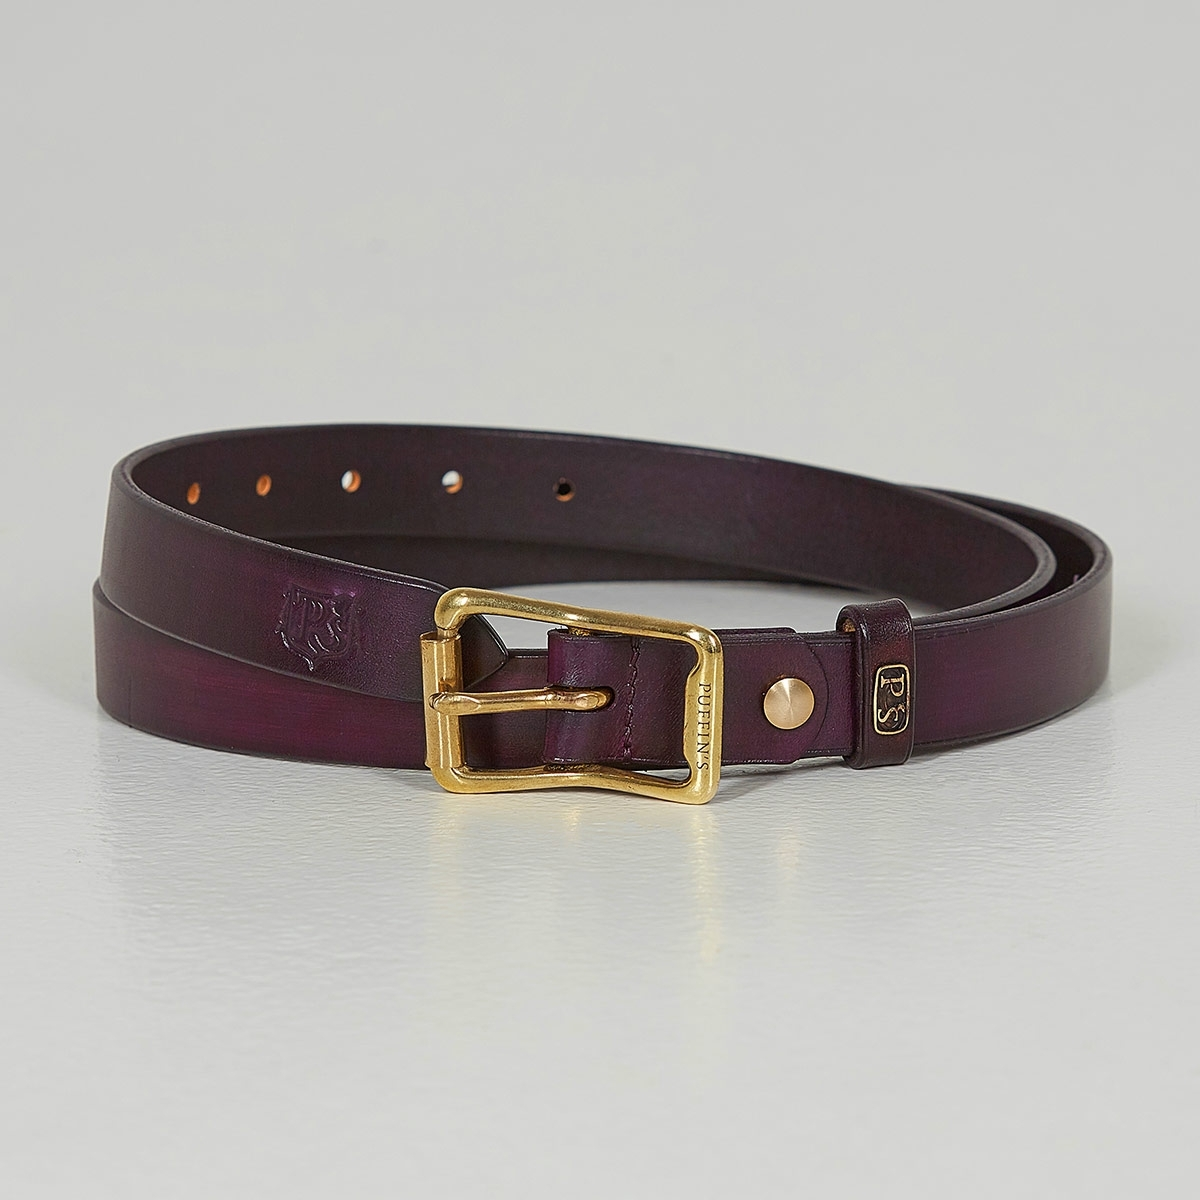 Luxury narrow belt 25mm with patina plum wine